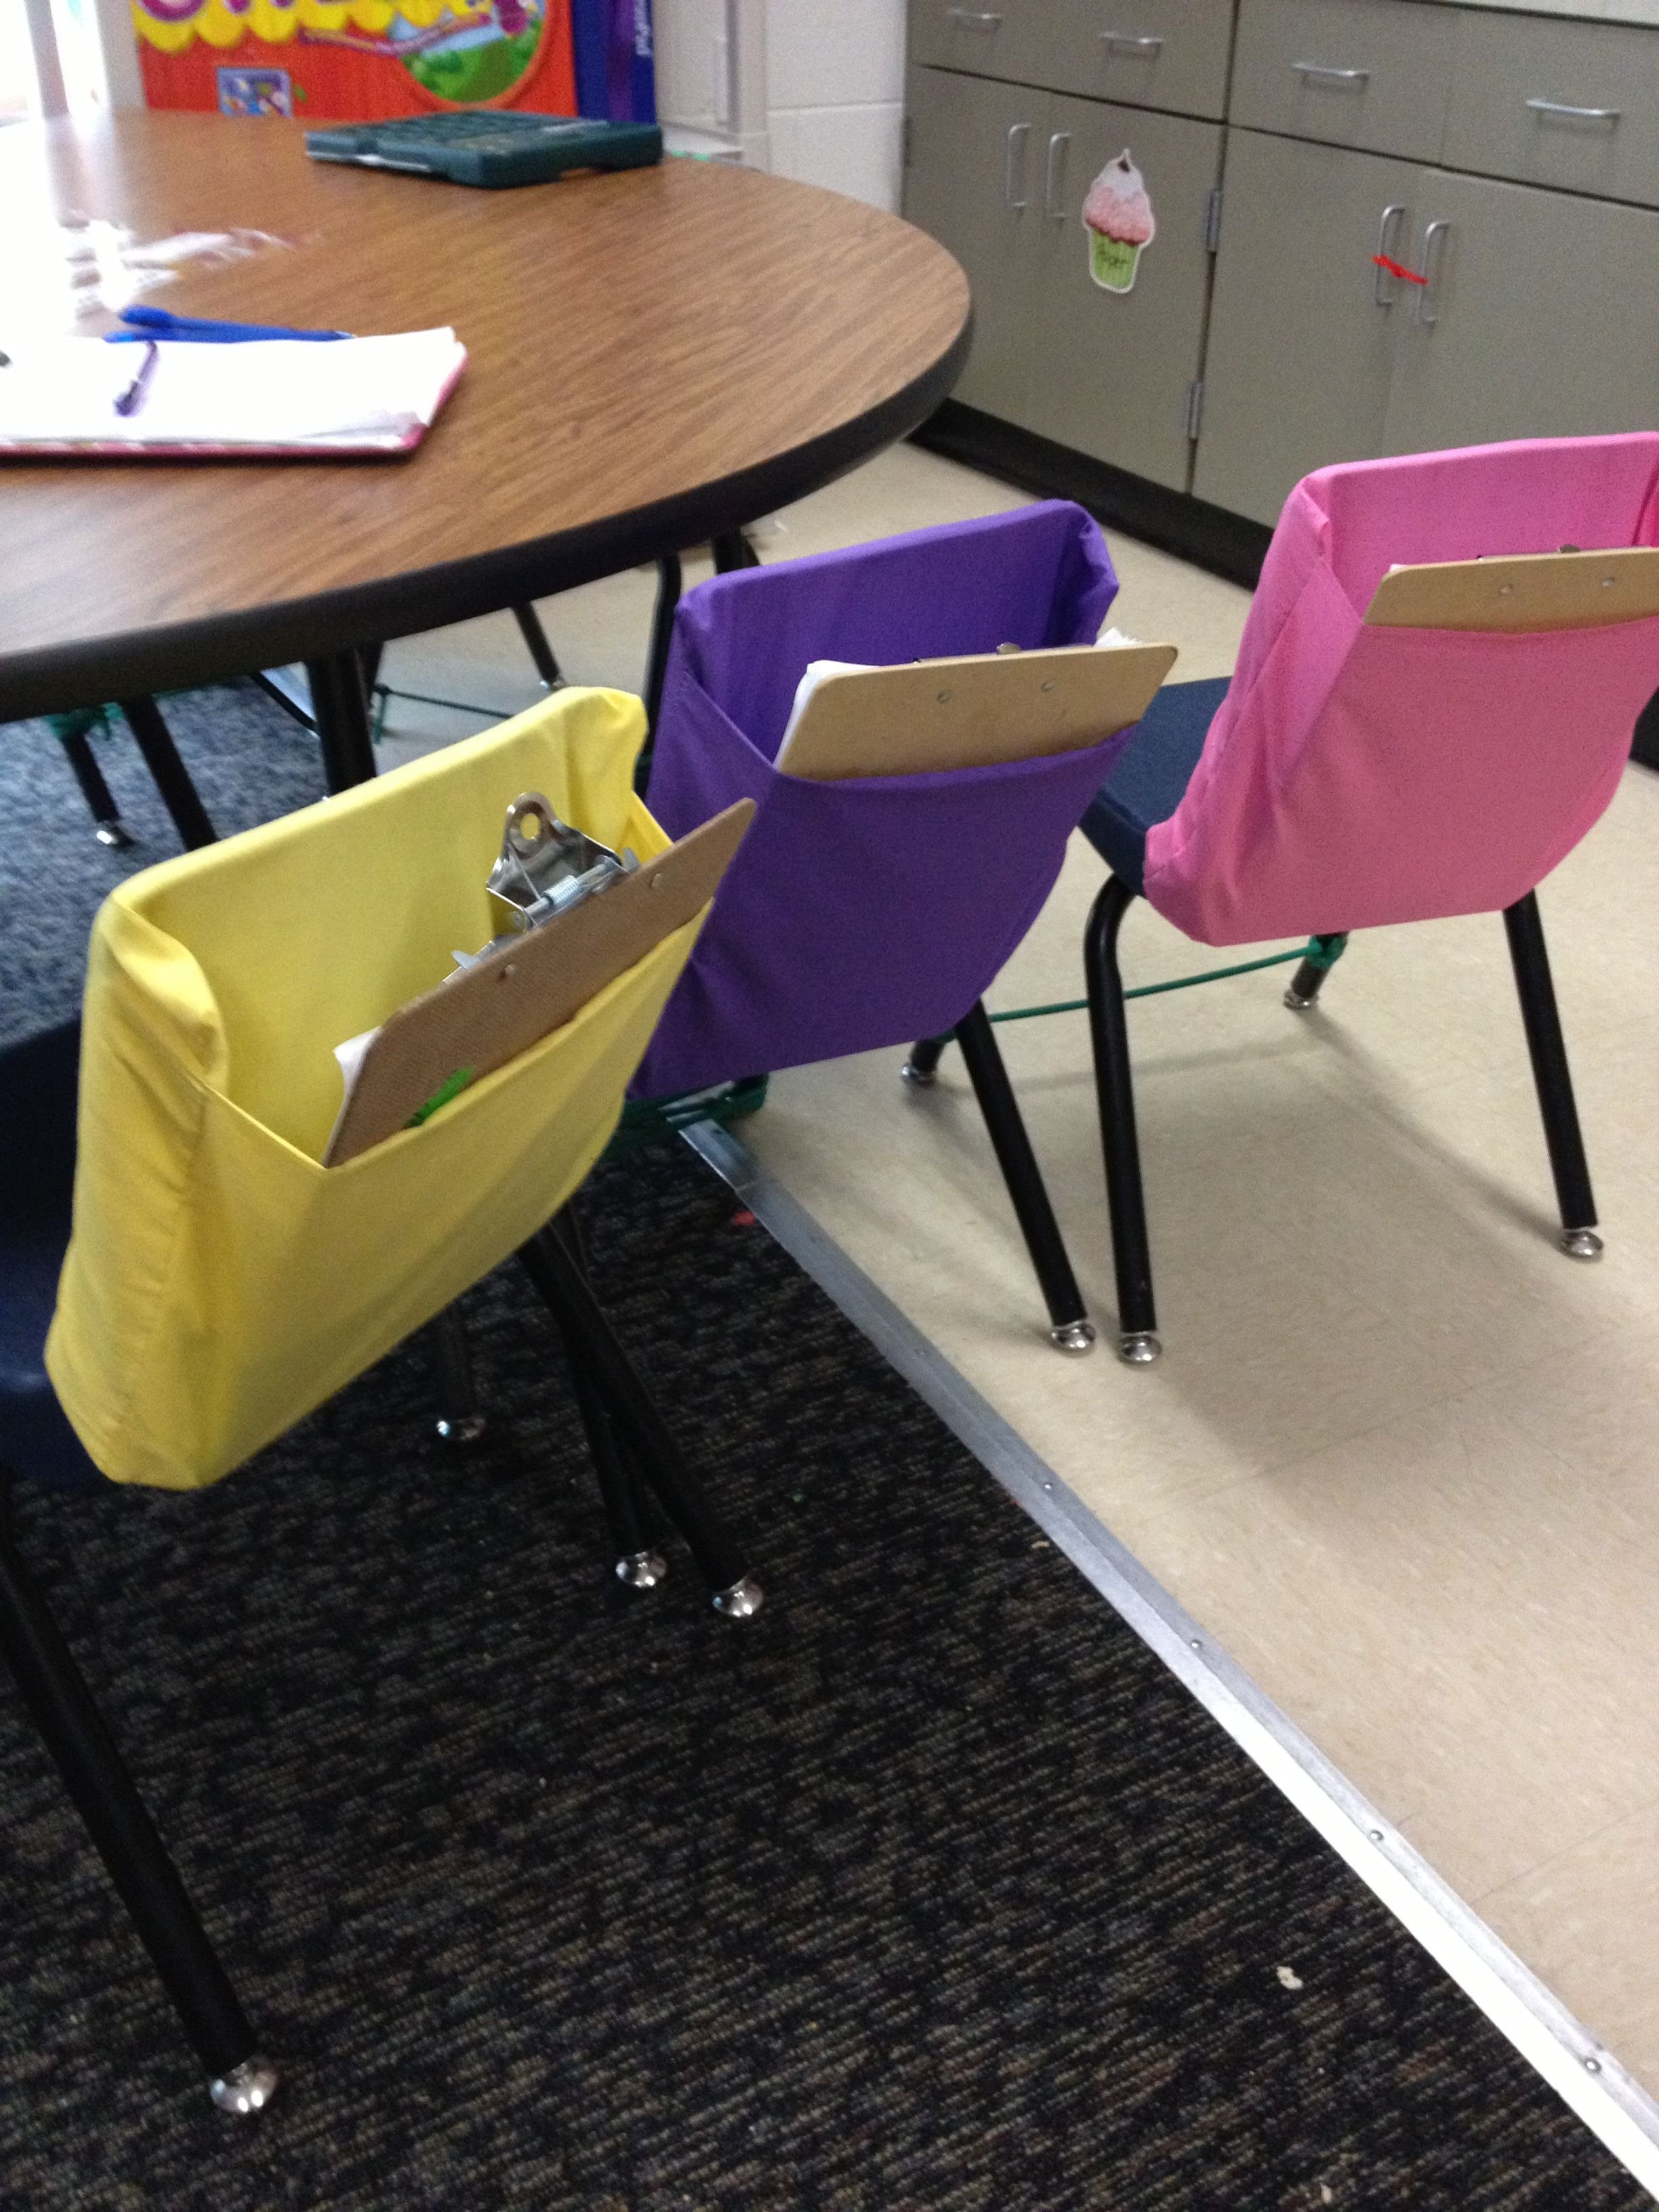 Classroom Chair Covers With Pocket Contemporary Recliner Easy Diy Pockets Ms Layne 39s Room Pinterest